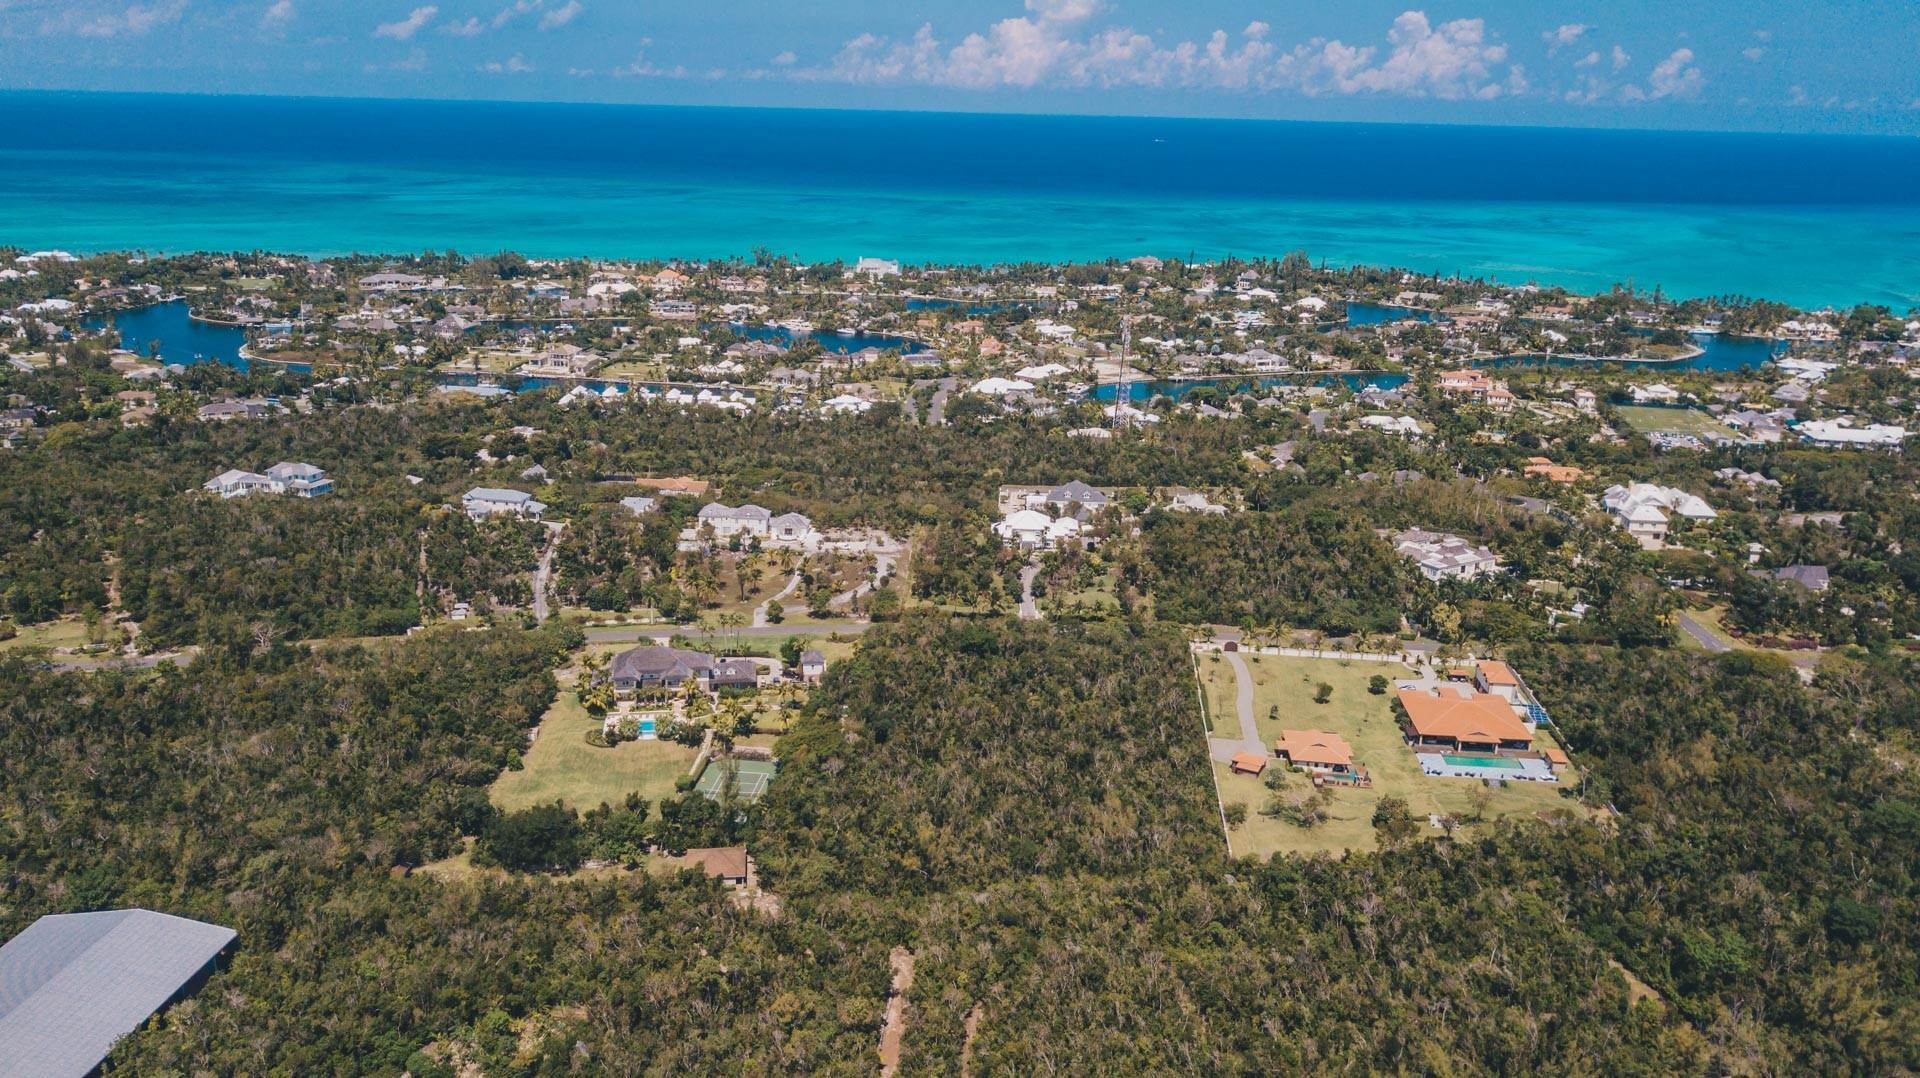 Land for Sale at Lyford Cay Estate Lot - MLS 41068 Lyford Cay, Nassau And Paradise Island, Bahamas